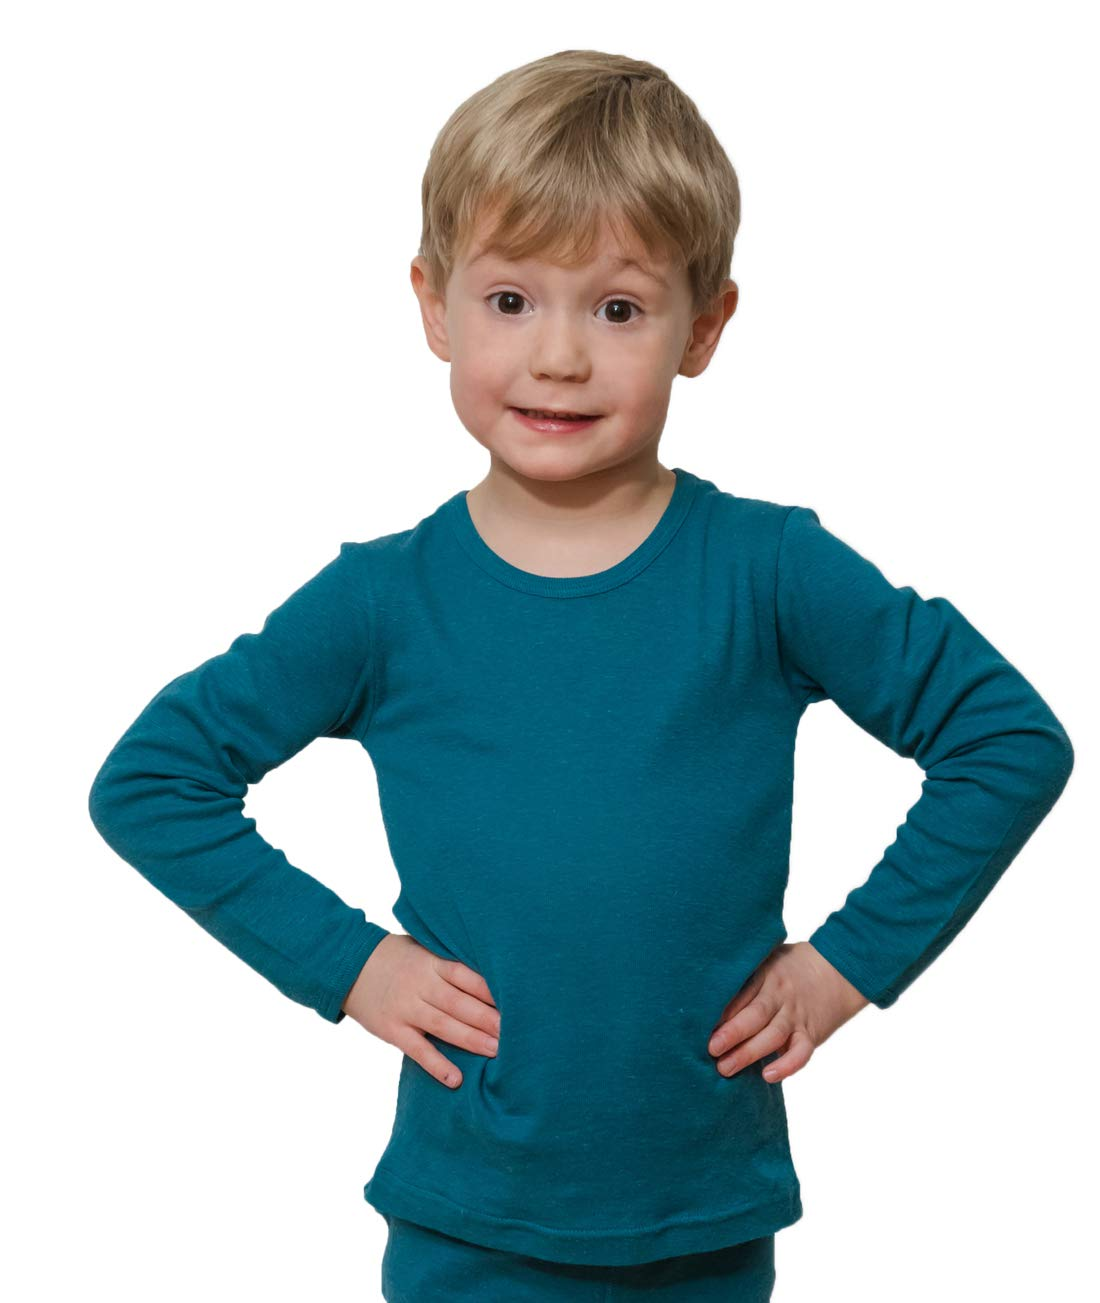 HOCOSA Children's Long Underwear Shirt, Long Sleeves in Organic Cotton/Hemp, Seagreen-Blue, Size 152 (12 yr, 60 in Tall) by Hocosa of Switzerland